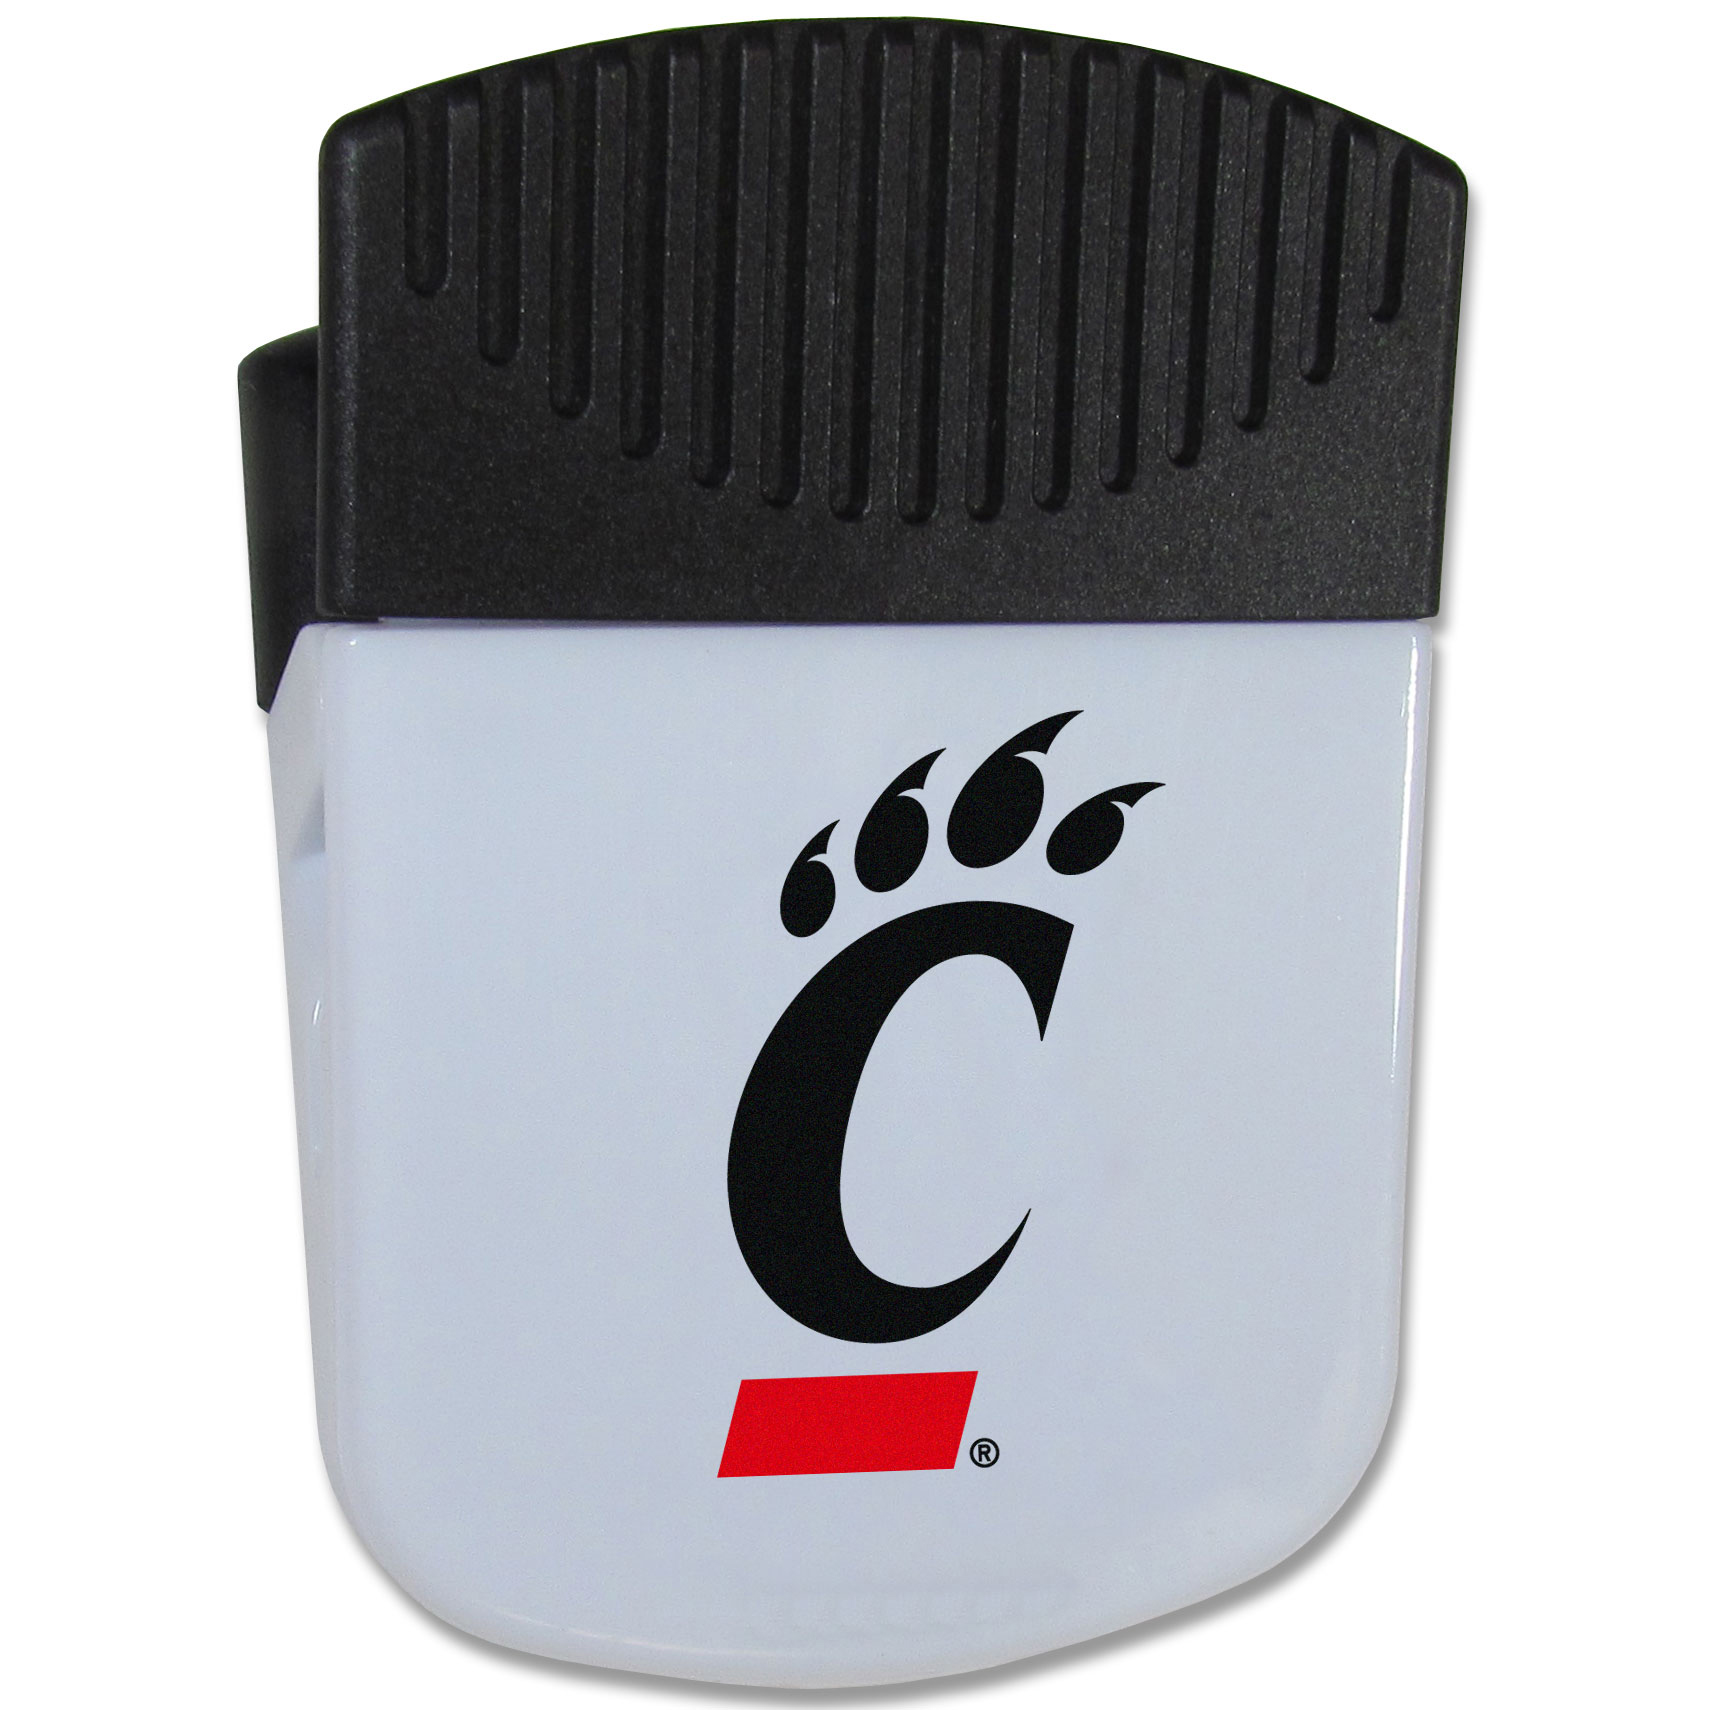 Cincinnati Bearcats Chip Clip Magnet - Use this attractive clip magnet to hold memos, photos or appointment cards on the fridge or take it down keep use it to clip bags shut. The magnet features a silk screened Cincinnati Bearcats logo.